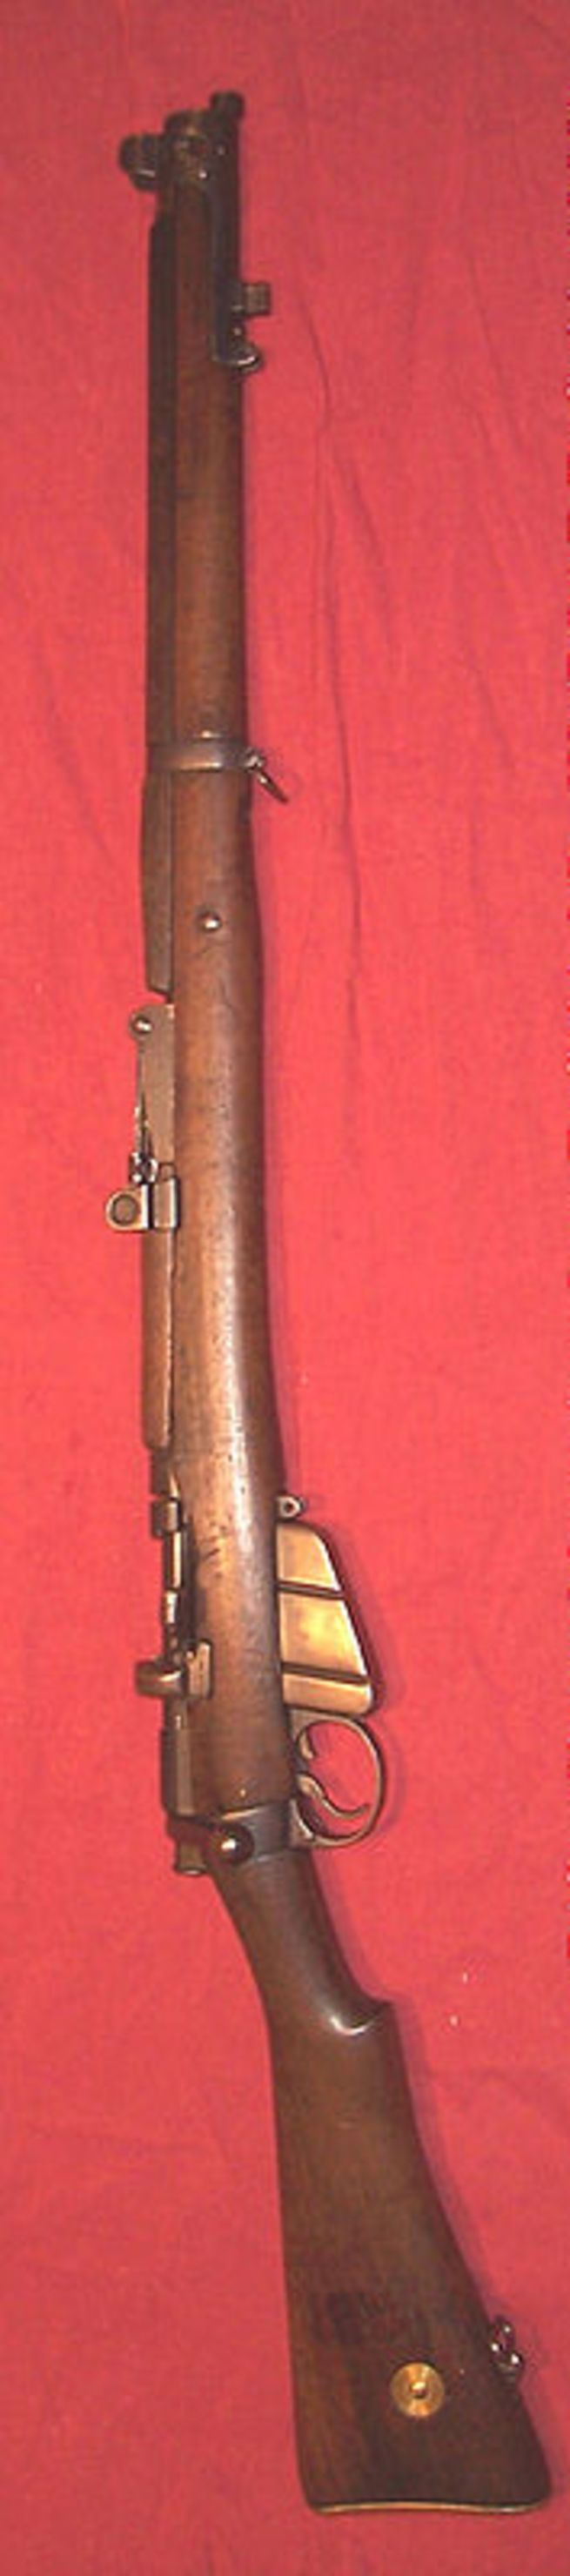 Lee Enfield